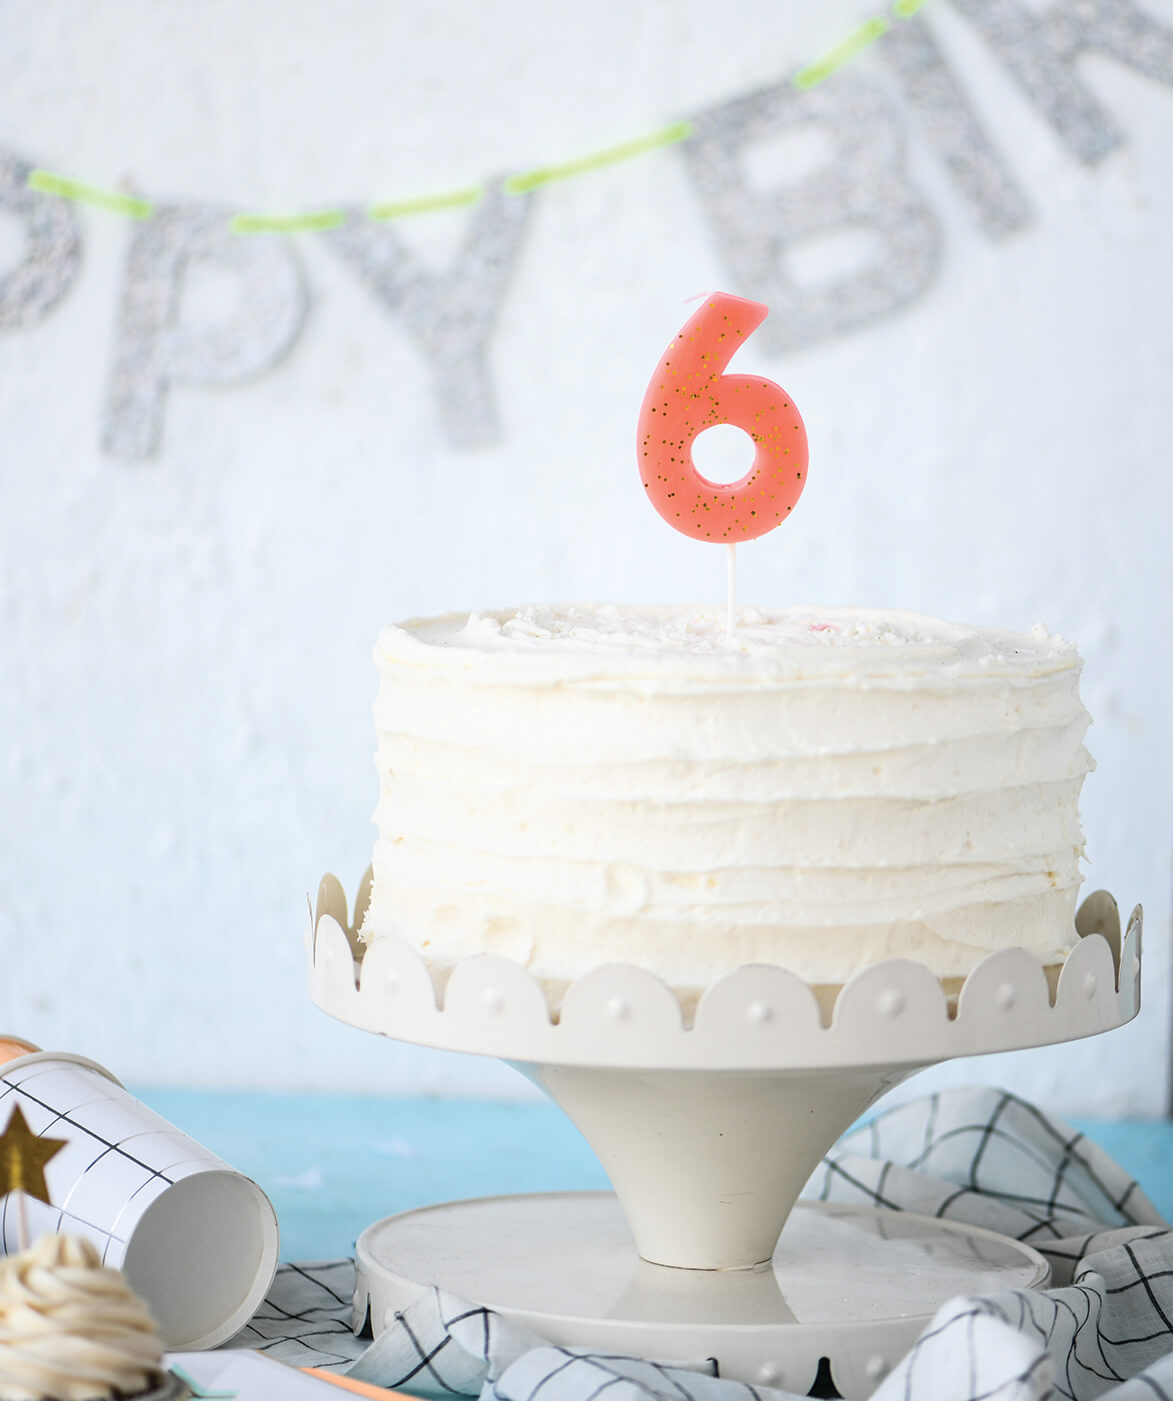 CHUNKY NUMBER CANDLE SIX